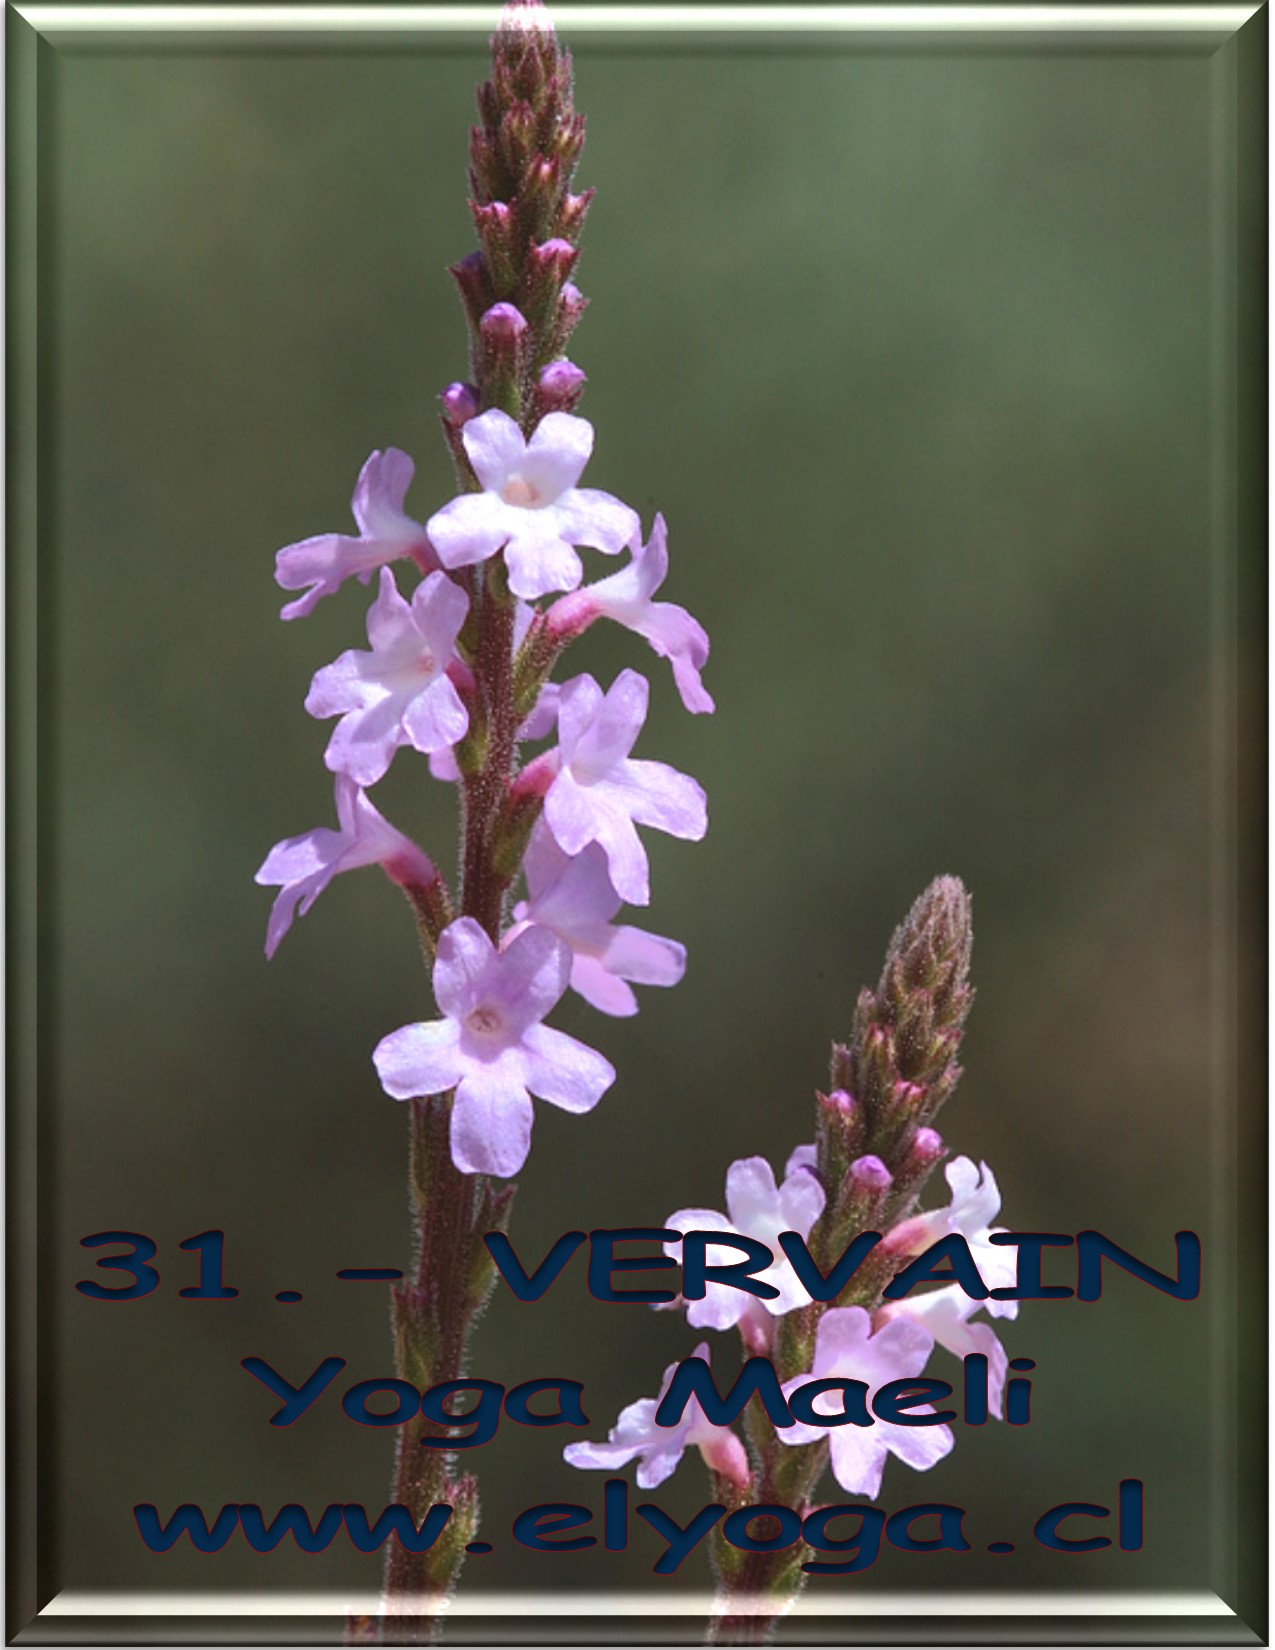 31VERVAIN